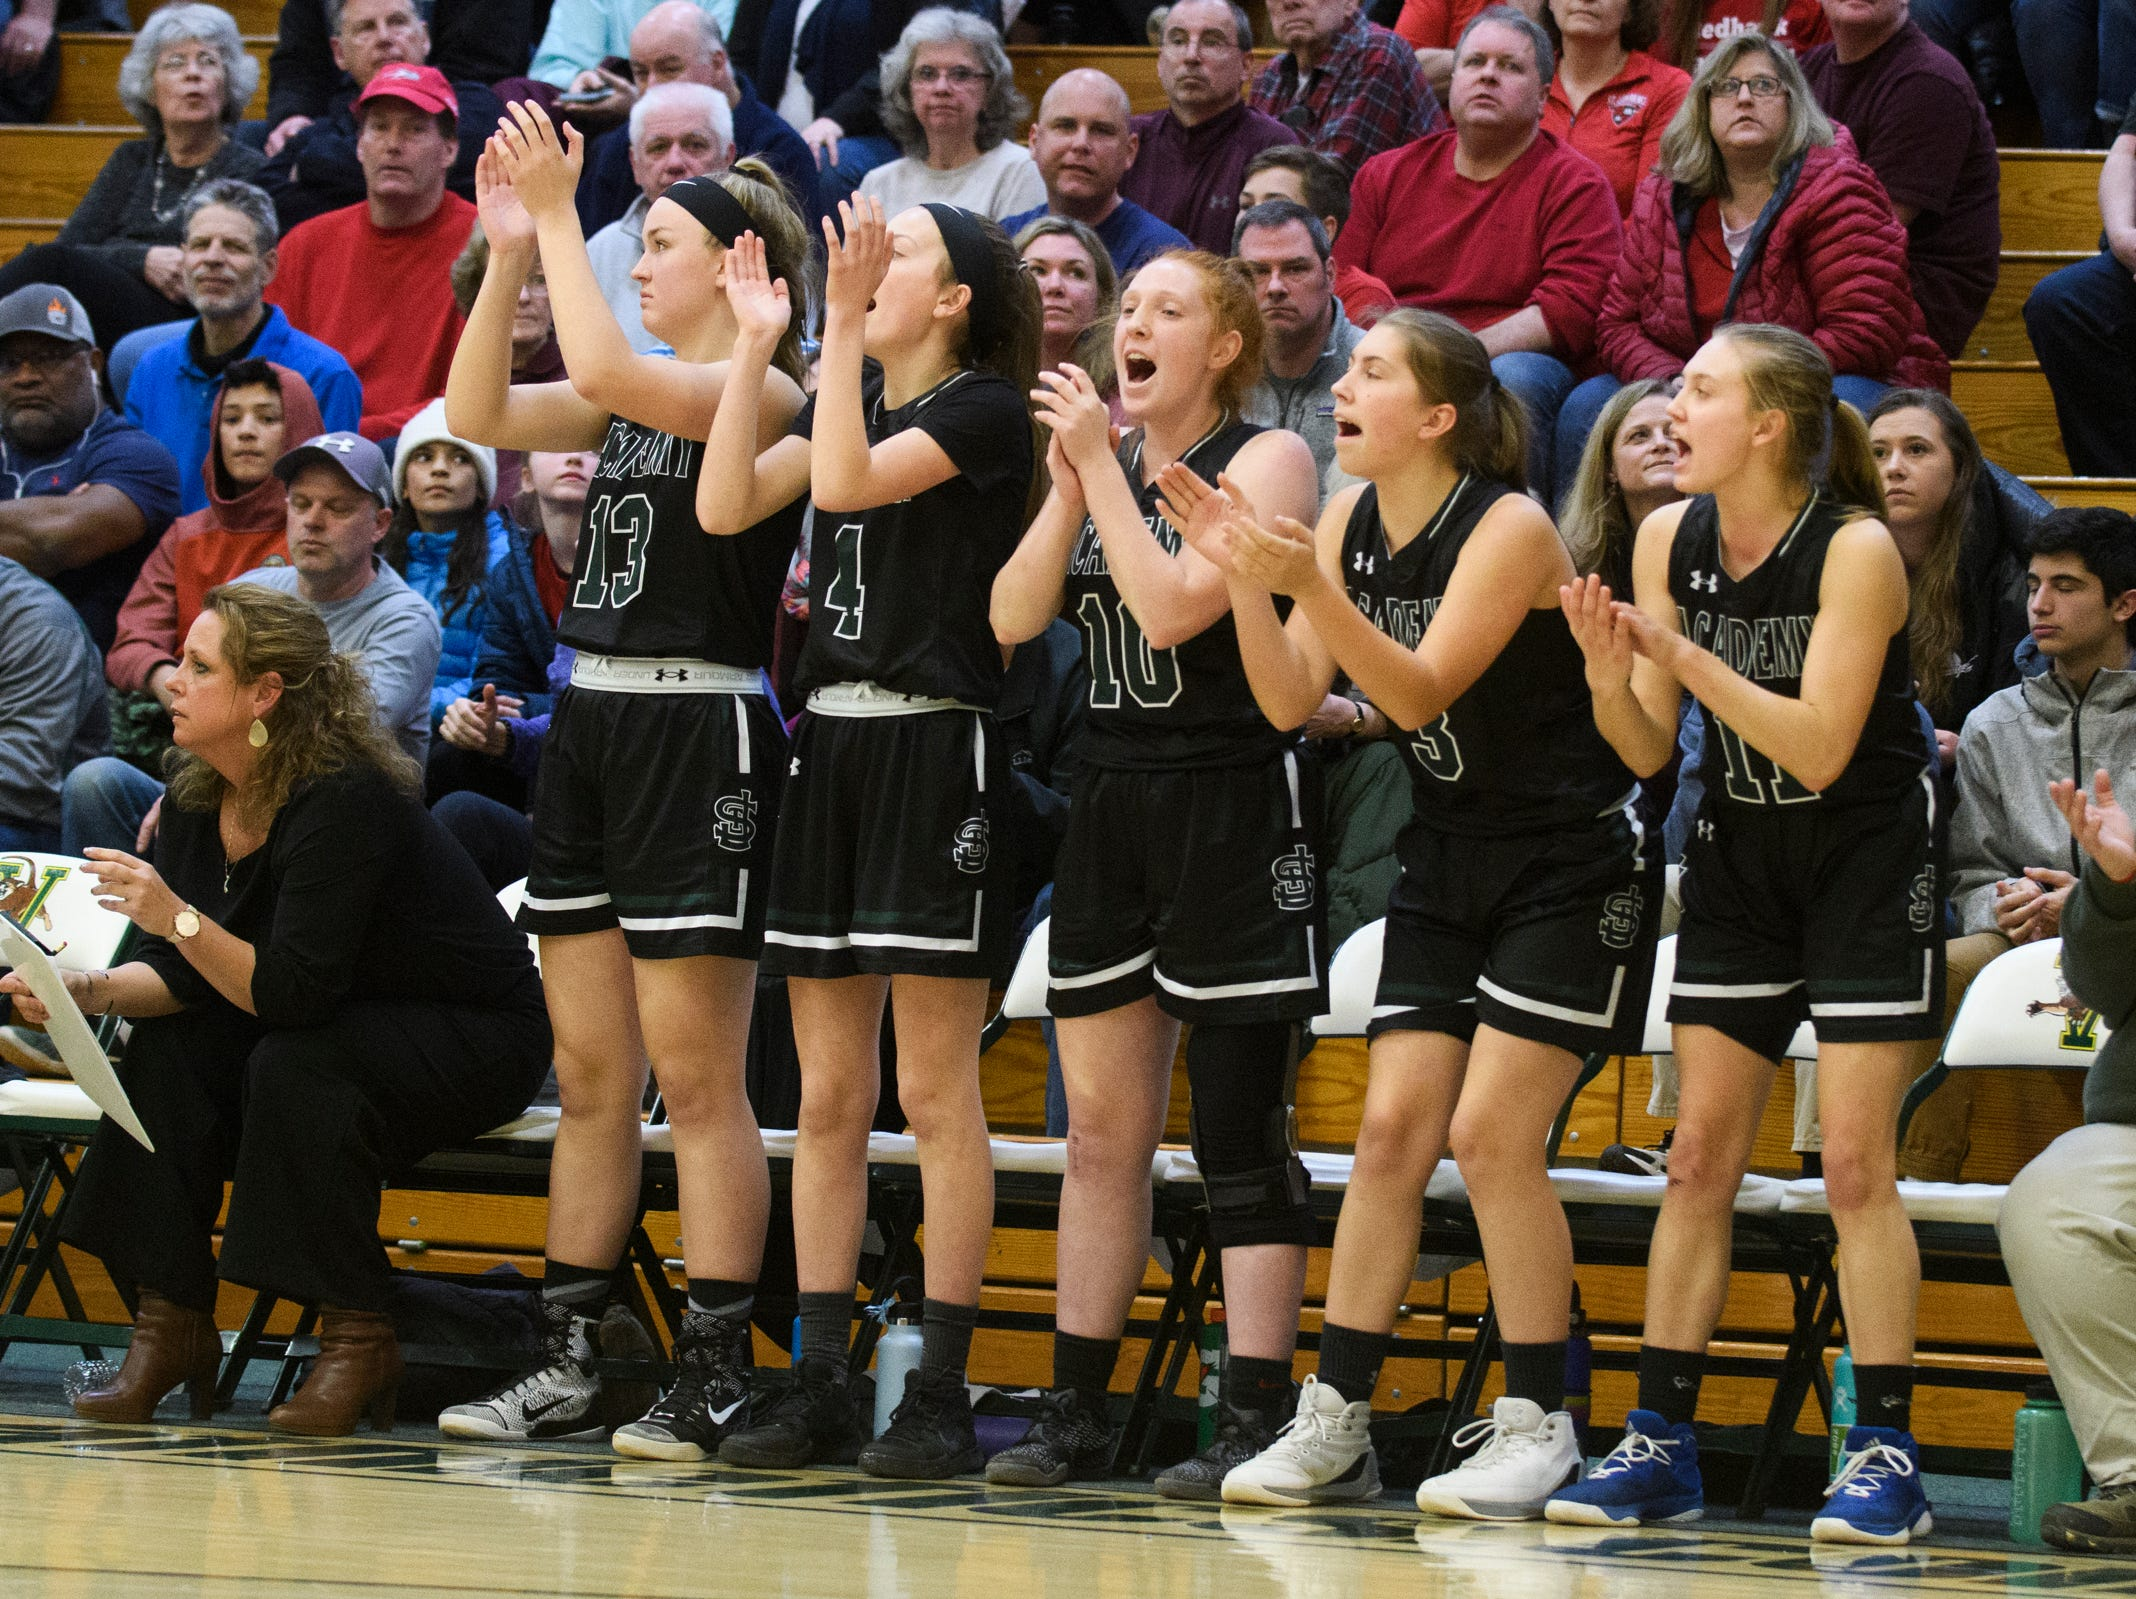 The St. Johnsbury bench cheers for the team during the division I girls basketball championship basketball game between the St. Johnsbury Hilltoppers and the Champlain Valley Union Redhawks at Patrick Gym on Sunday afternoon March 10, 2019 in Burlington, Vermont.